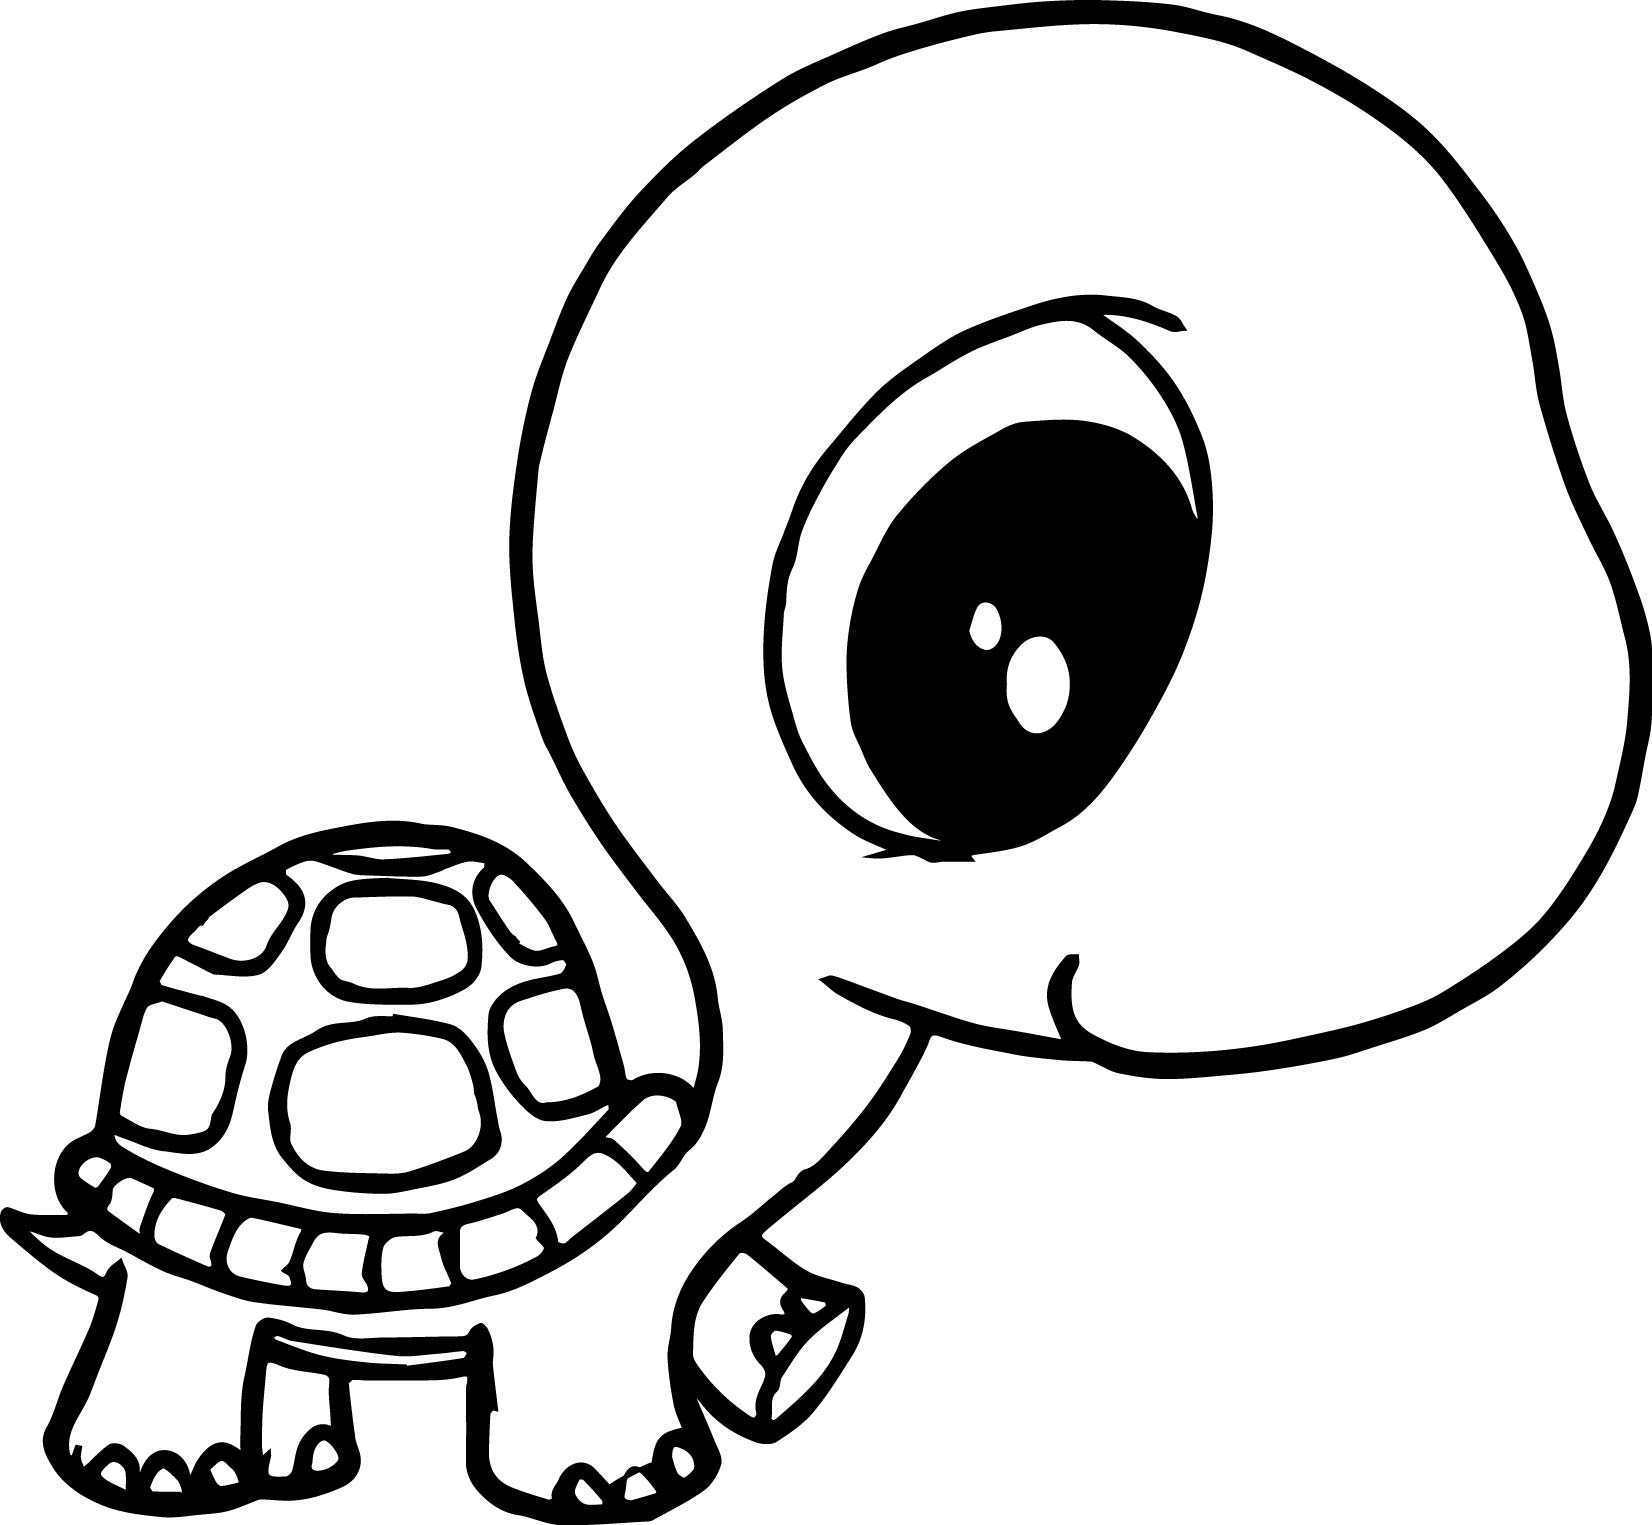 big head small body tortoise turtle coloring page - Big And Small Coloring Pages